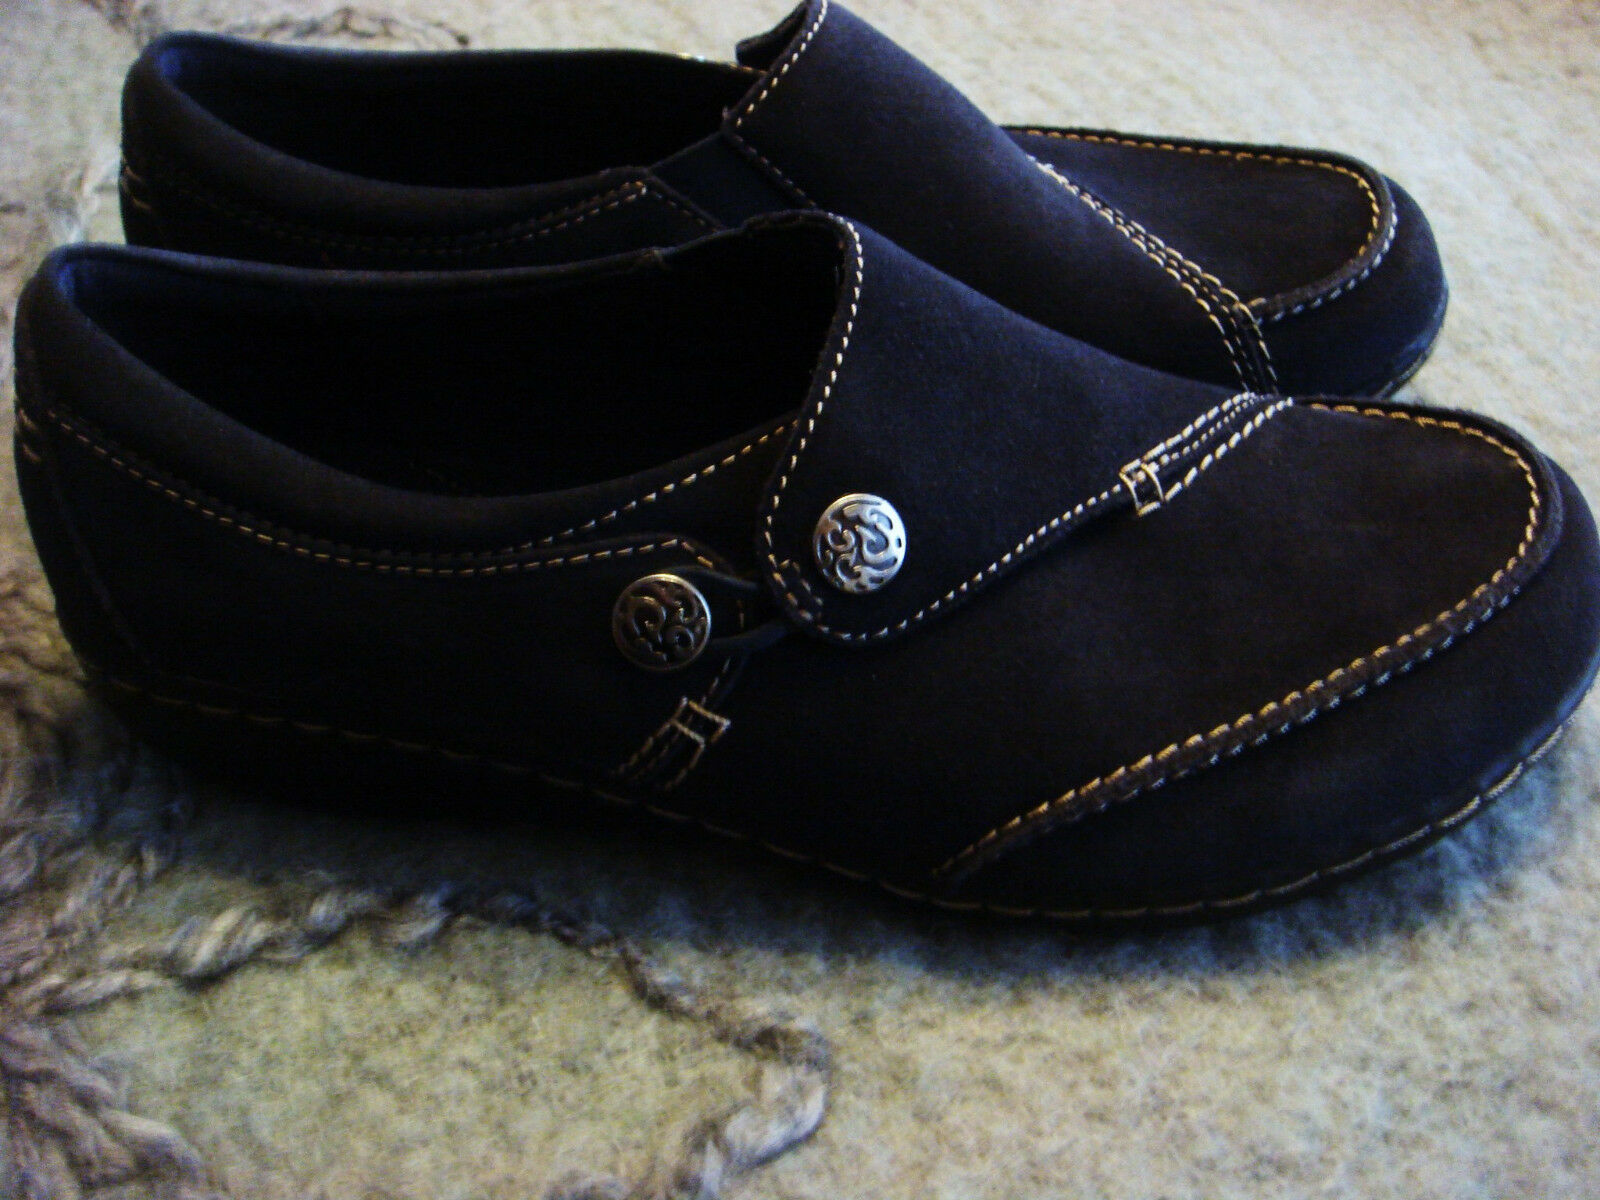 CLARKS women's Leather Suede Navy bluee Ashland Lane shoes 9.5 W